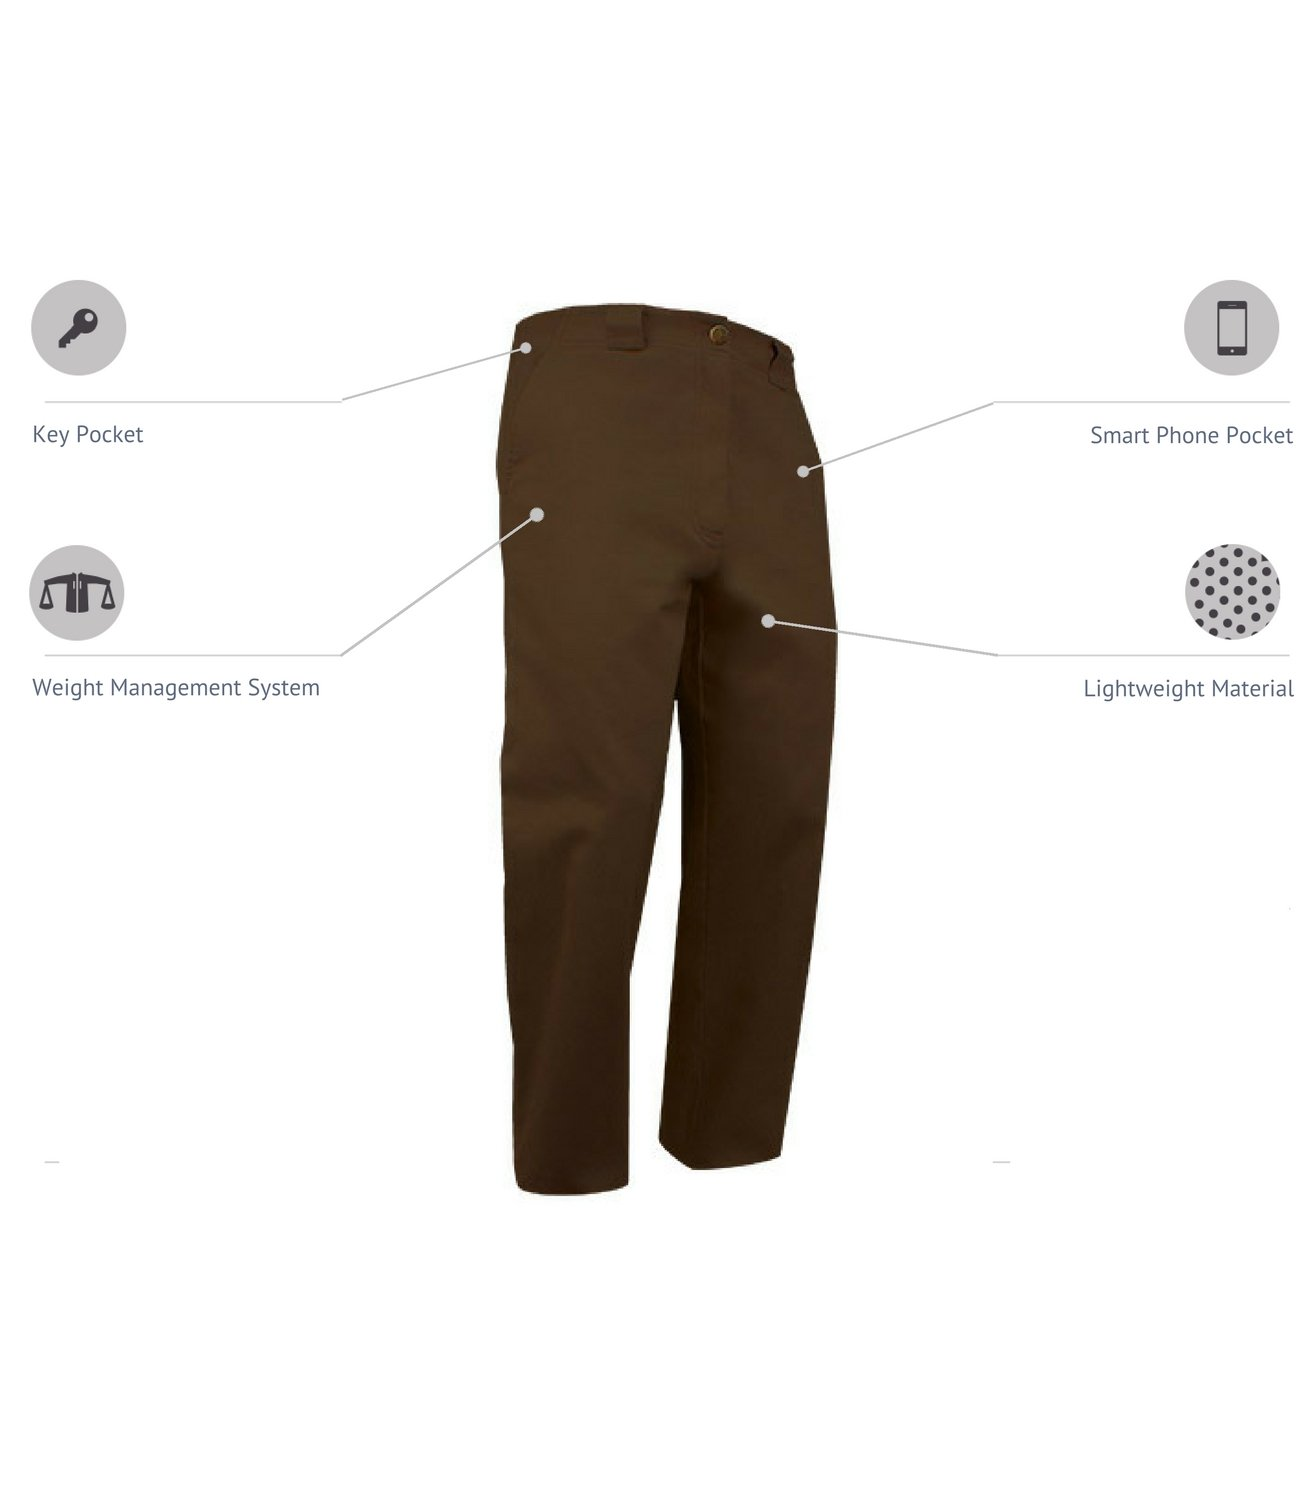 umbro exercise trousers comforter pants autumn new sportswear trainning sports and item men winter training running in leisure long comfortable